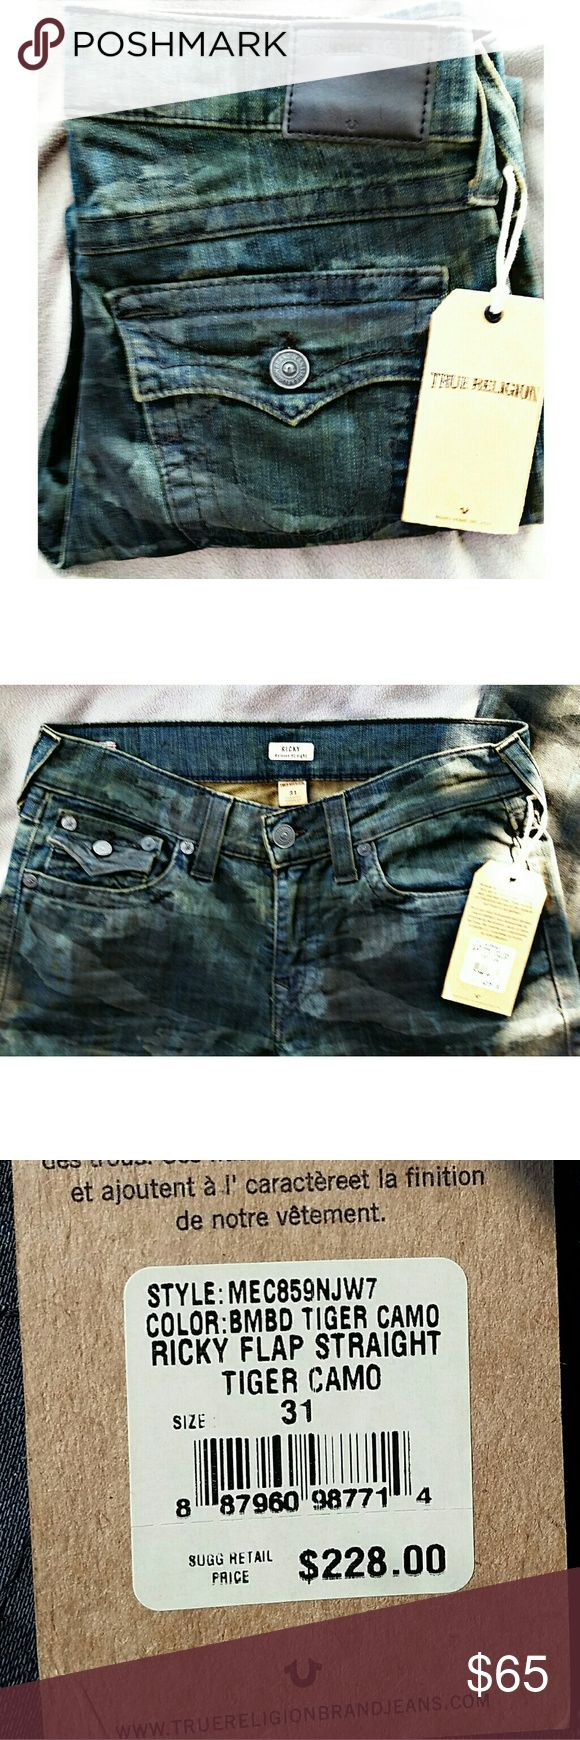 True Religion Jeans Men's True Religion Jeans *NWT* Ricky Relaxed Straight, Tiger Camo, Size 31. True Religion Jeans Relaxed